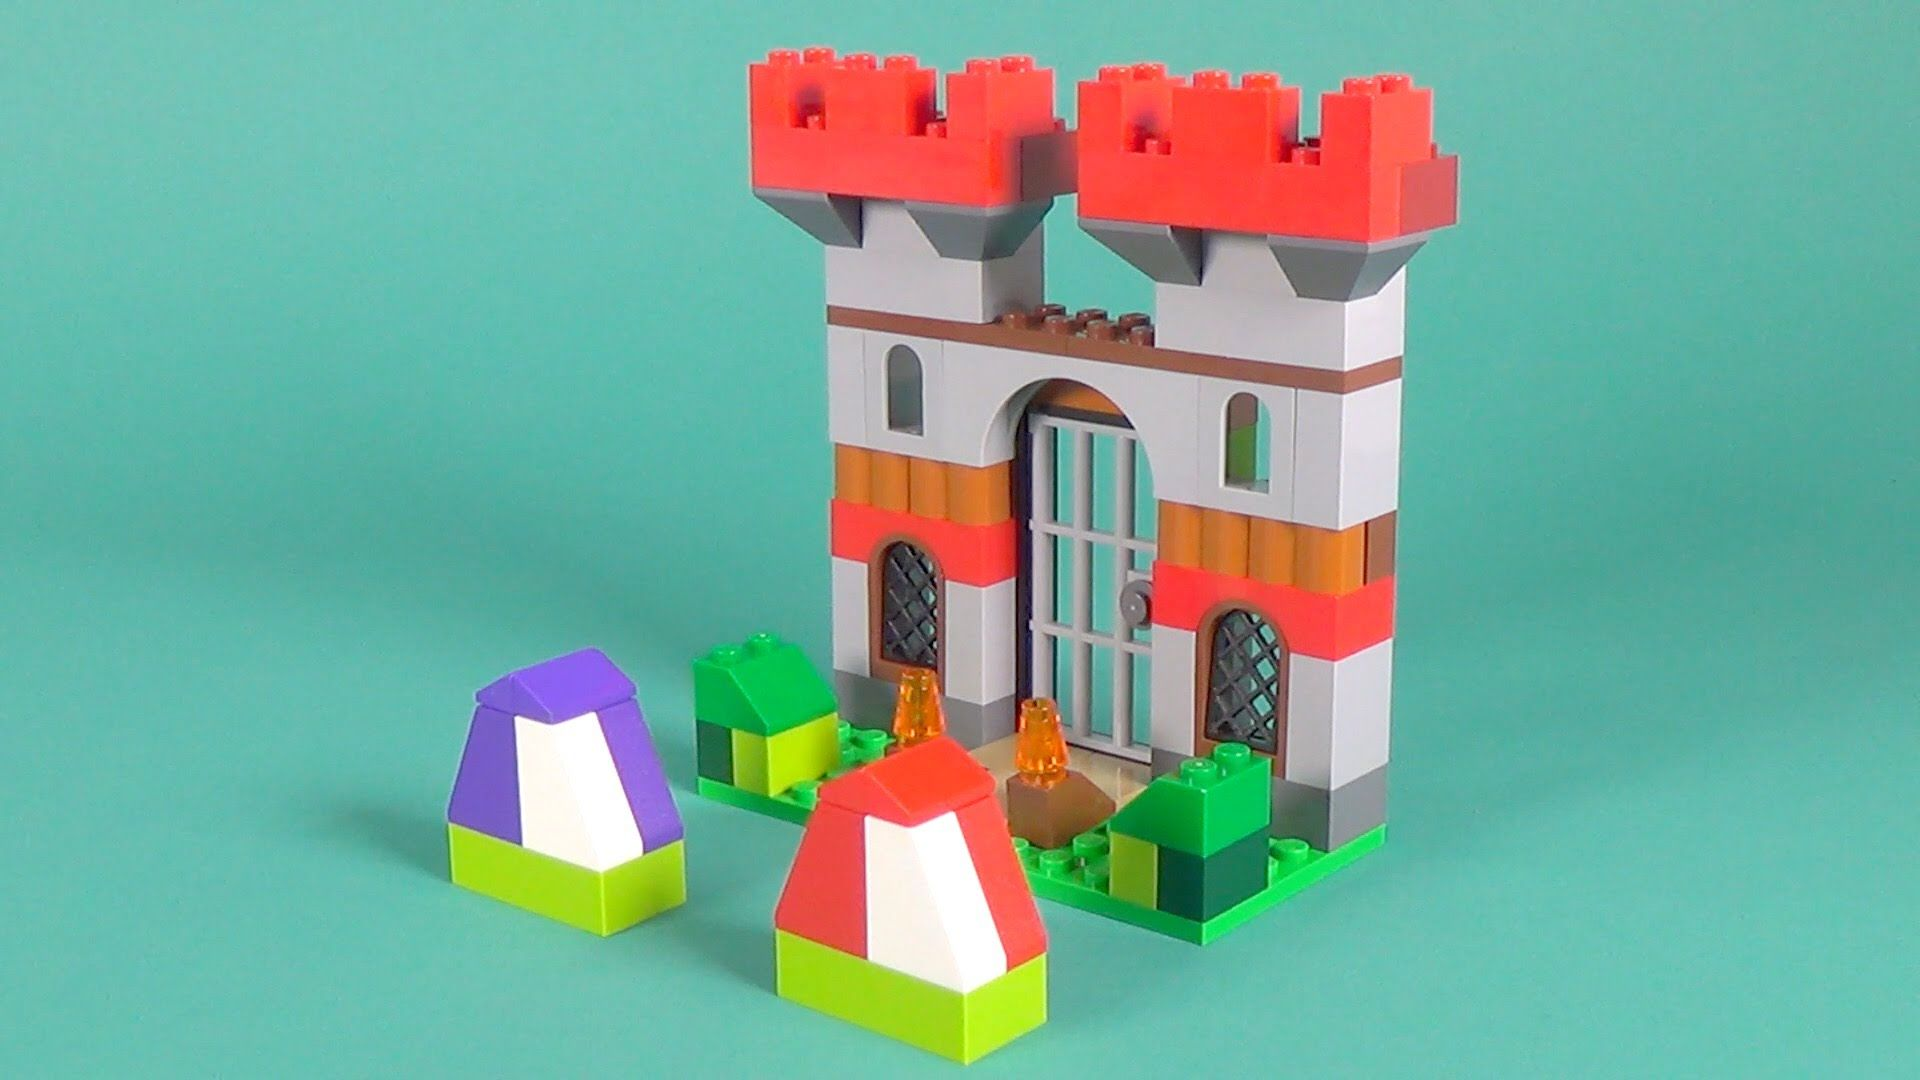 Lego Castle Building Instructions Lego Classic 10698 How To